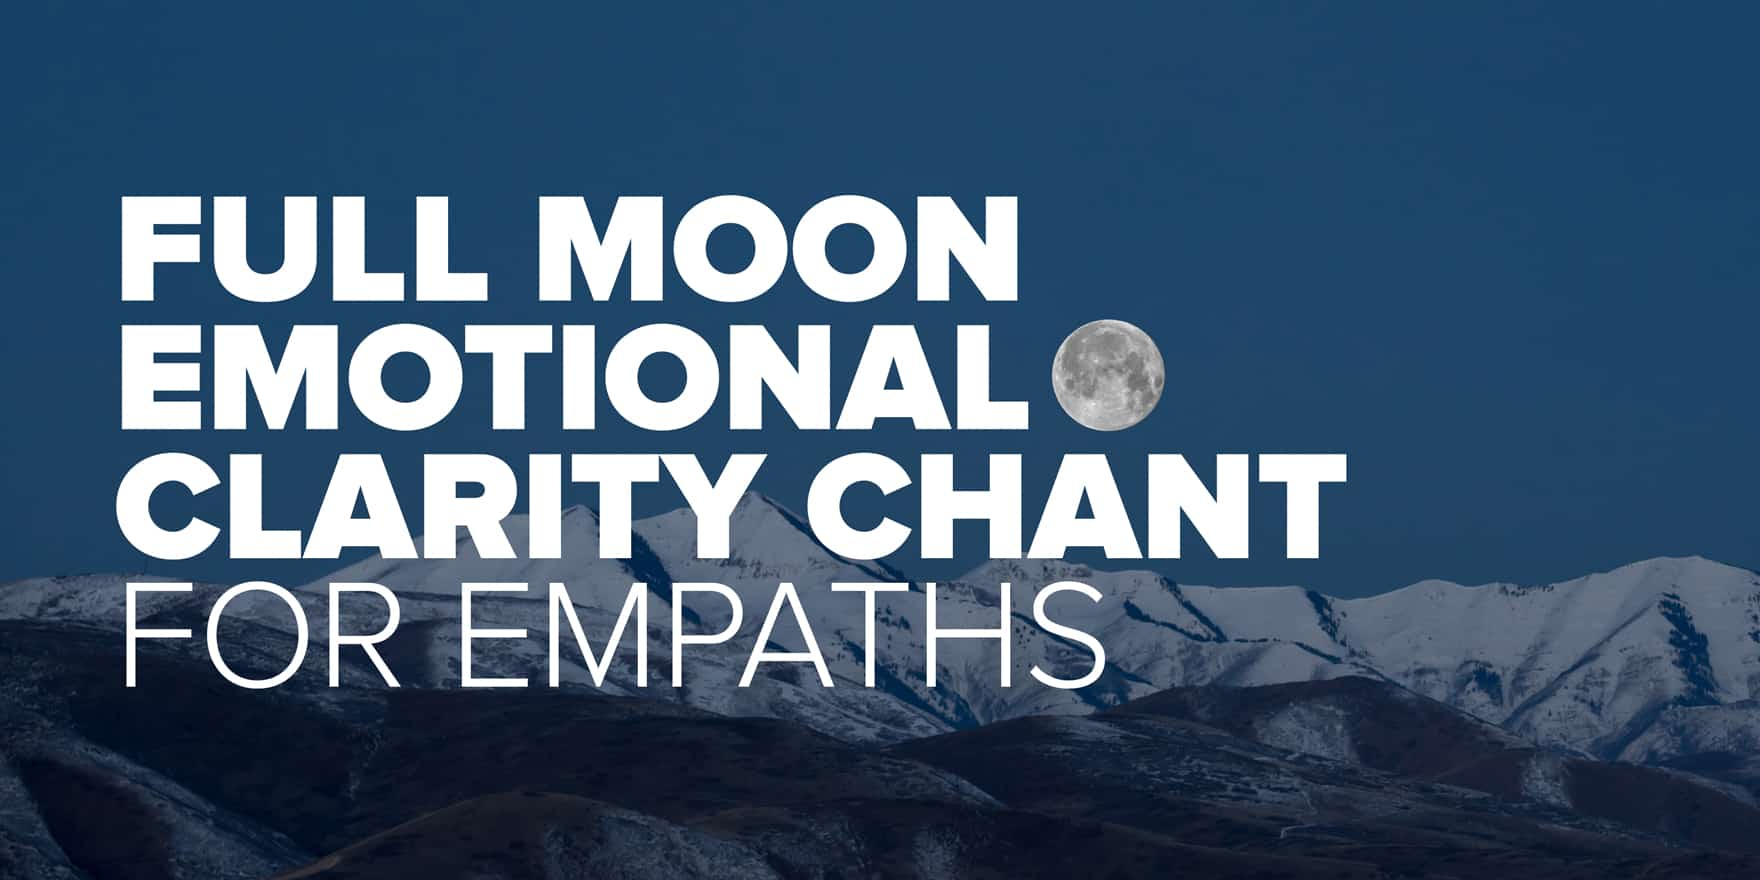 Full Moon Emotional Clarity Chant For Empaths Plentiful